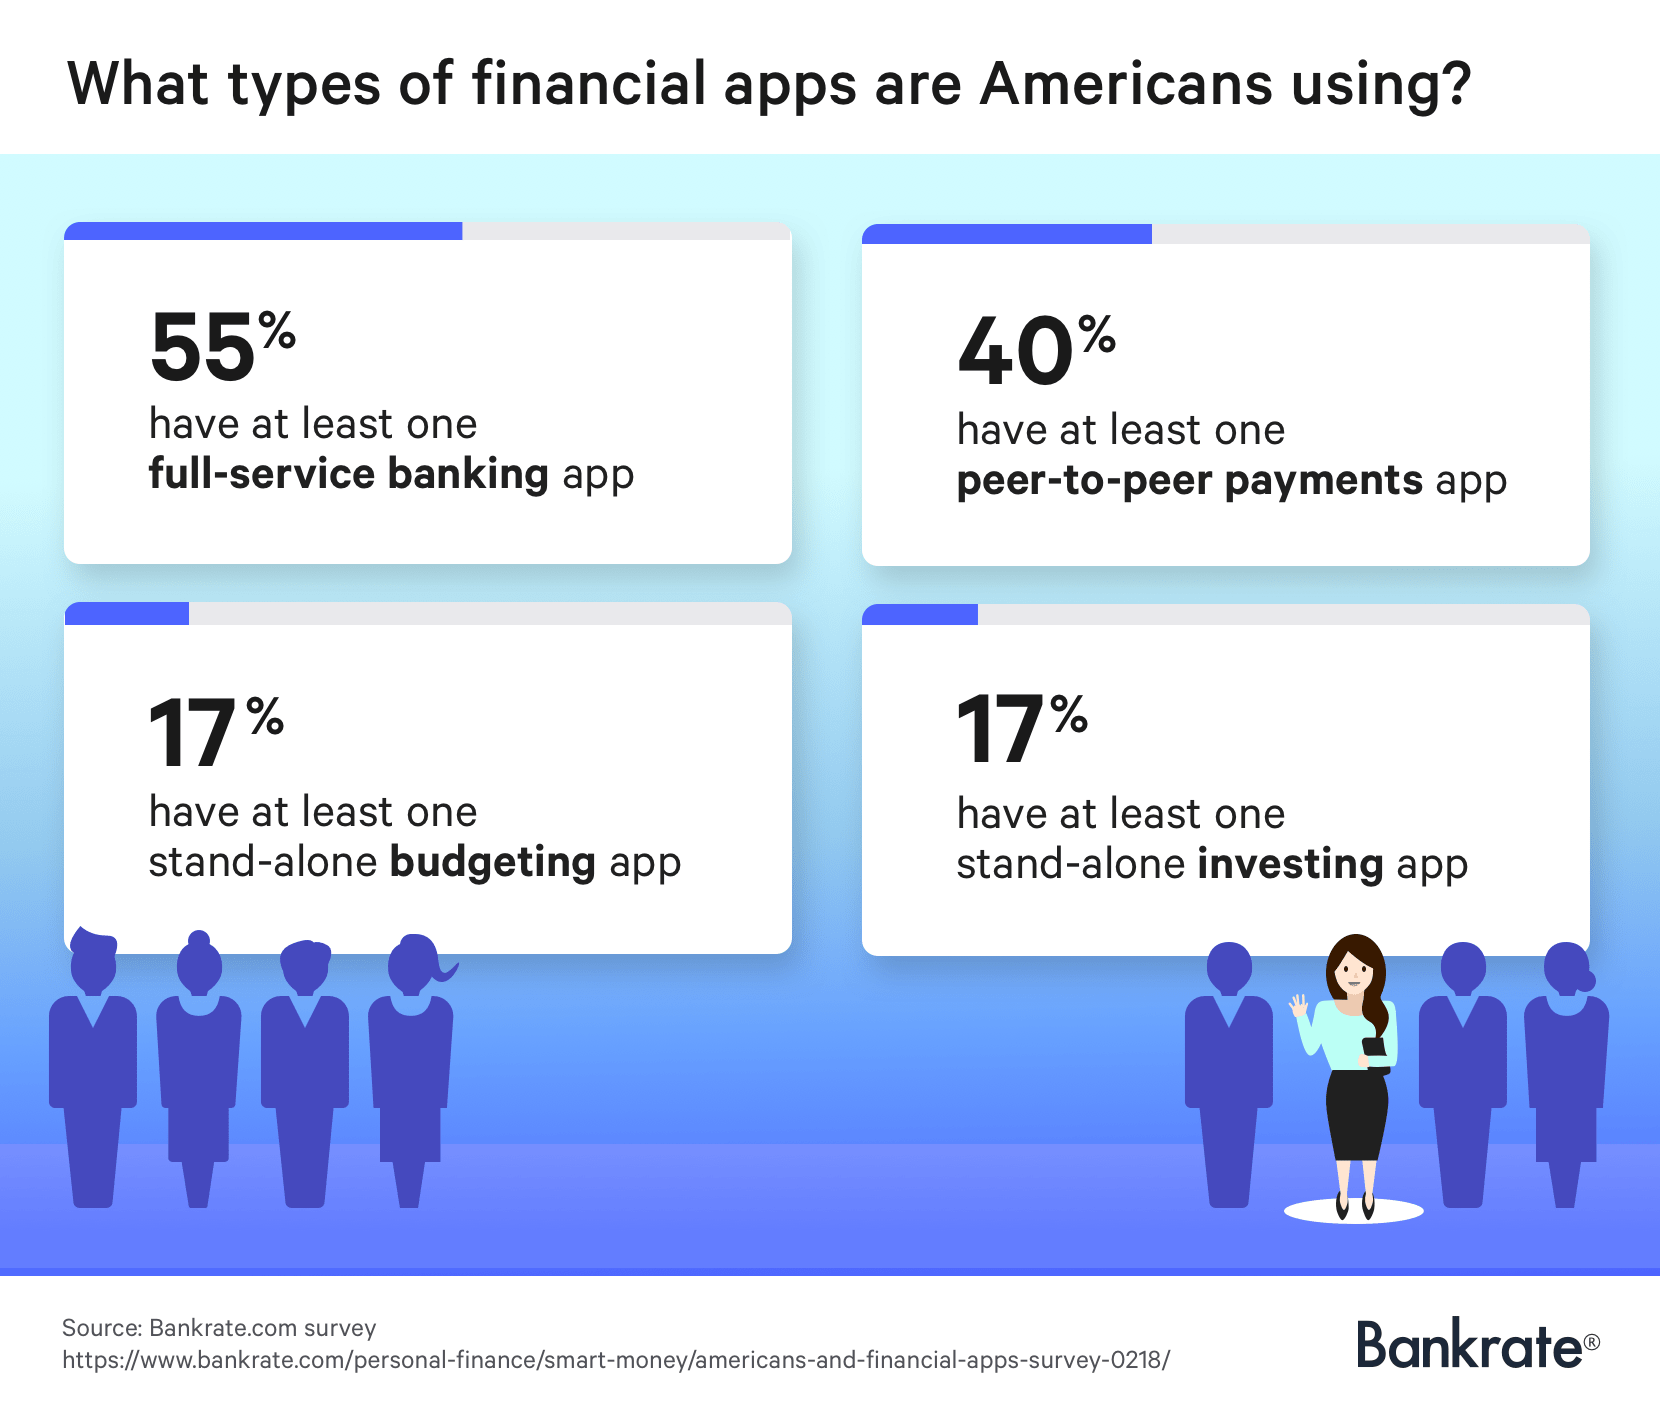 What types of financial apps are Americans using?